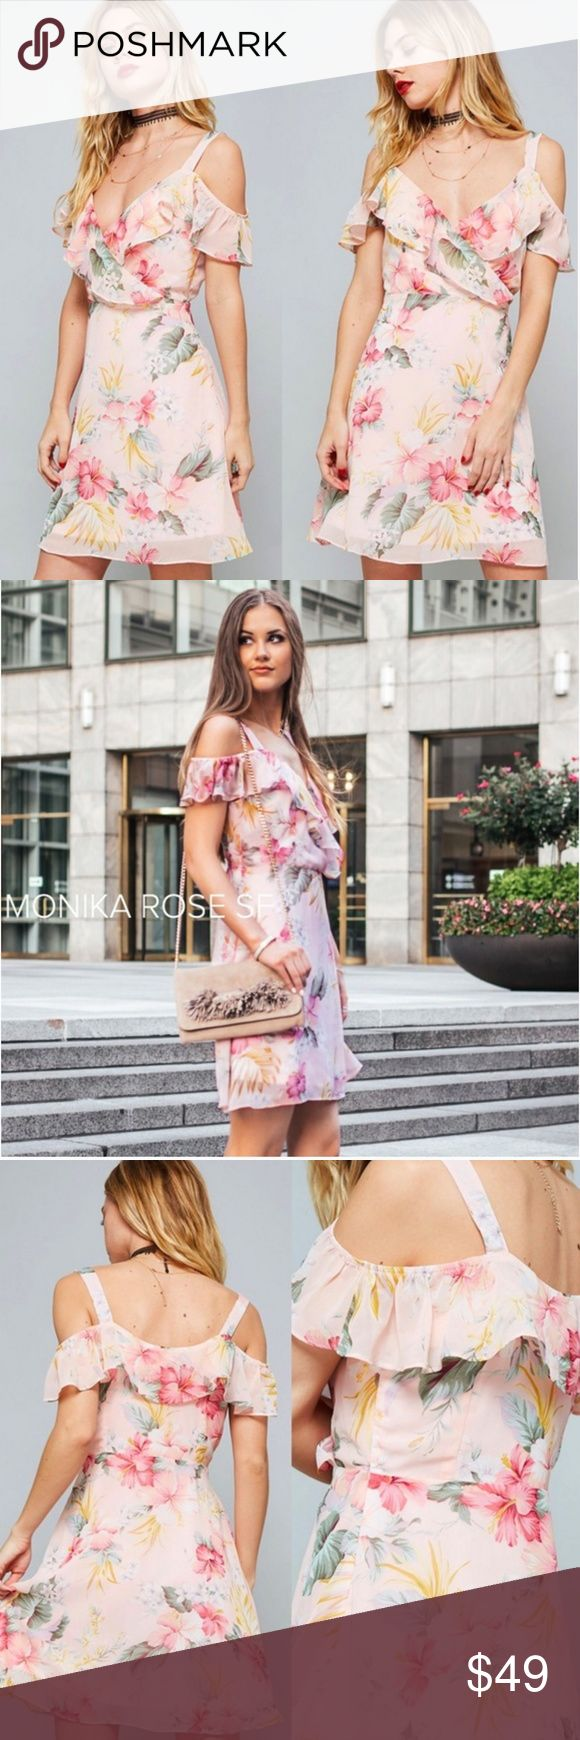 "Blush Pink Floral Wrap Dress RACHEL x Monika Rose SF Collaboration * All photo rights reserved   * Floral Print * Cold Shoulder Ruffle Detail * Front Wrap Style * Fully Lined * 100% Polyester   Model is wearing size Small and is 5'8"".    S: 38in B, 35in L M: 40in B, 35in L L: 42in B, 36in Monika Rose SF Dresses"